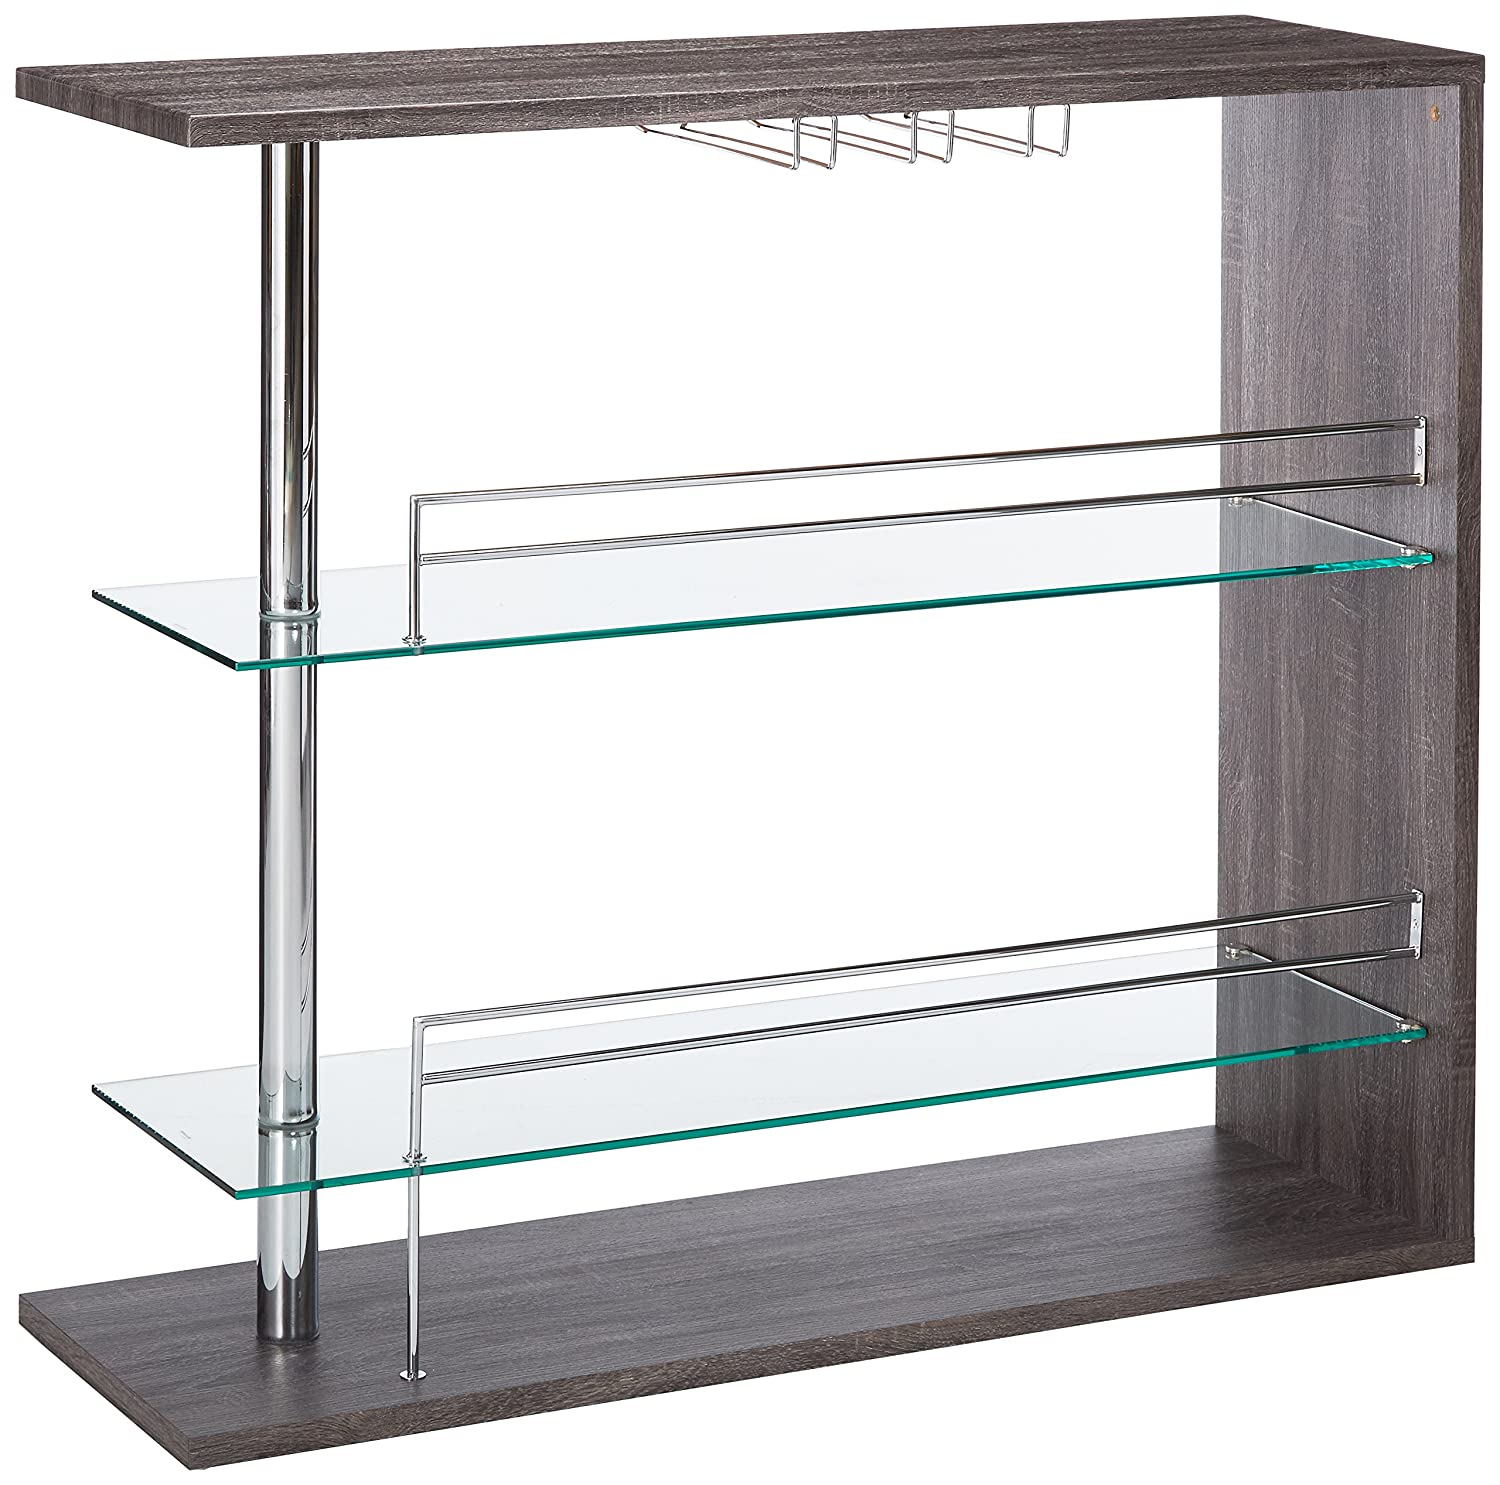 Rectangular 2-shelf Bar Unit with Wine Holder Weathered Grey, Chrome and Clear Coaster 100156